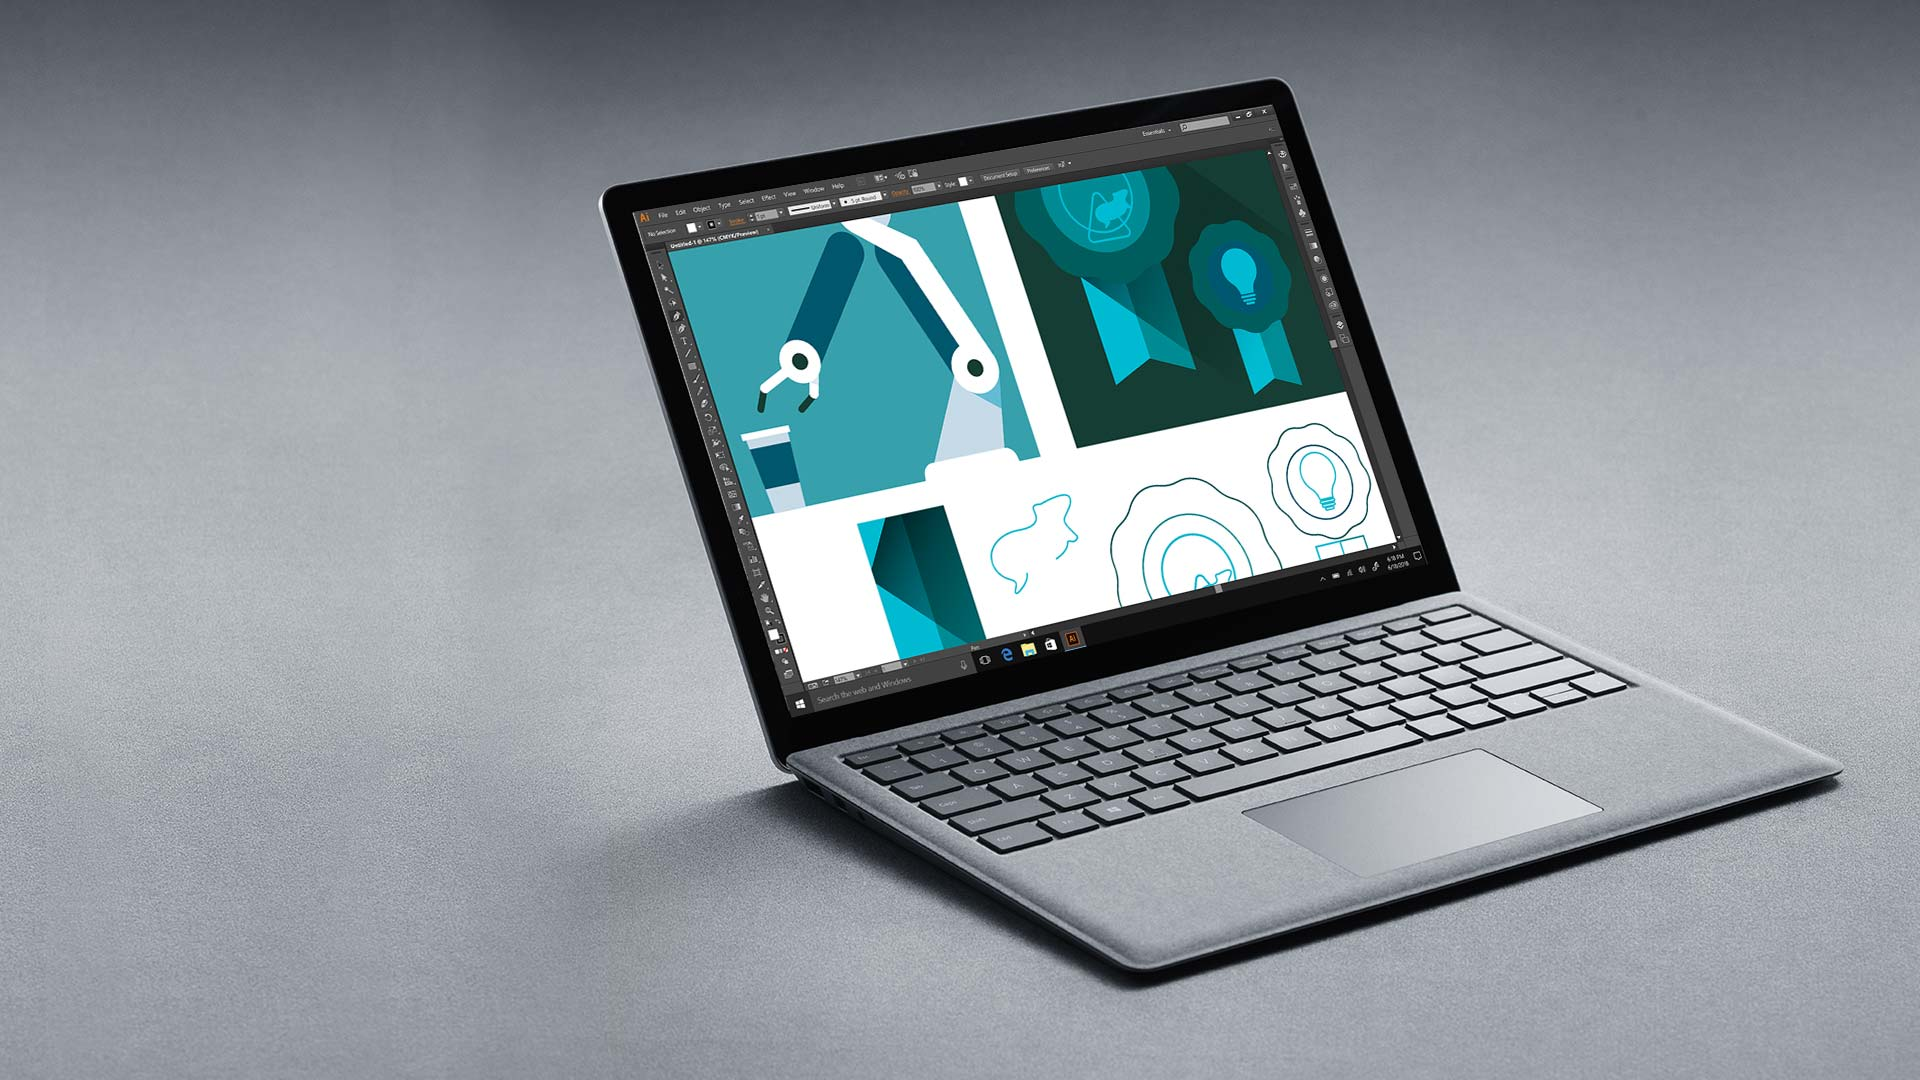 Platinum Surface Laptop with Adobe Illustrator screen.